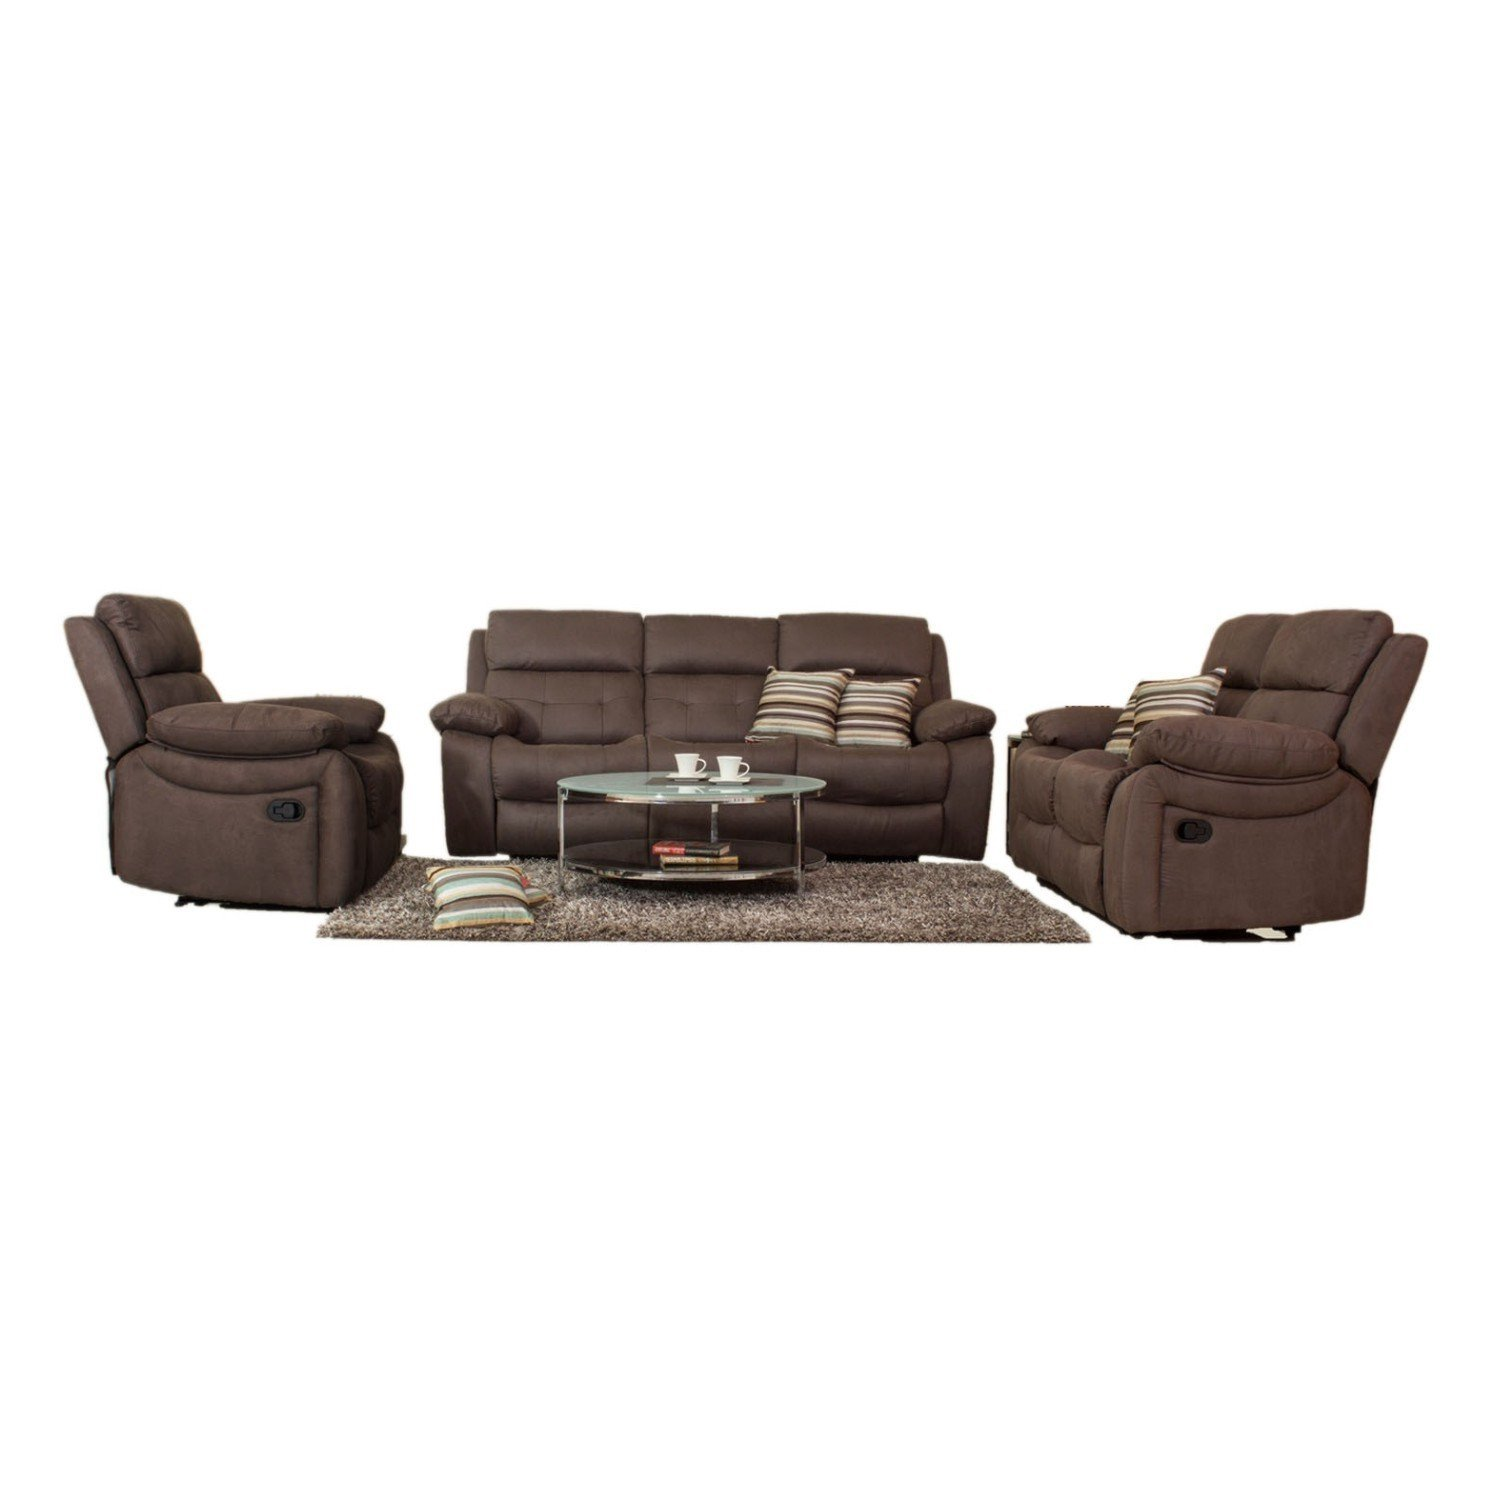 recliner sofa set amazon best bed 2018 canada evok eon 3 2 1 brown available at